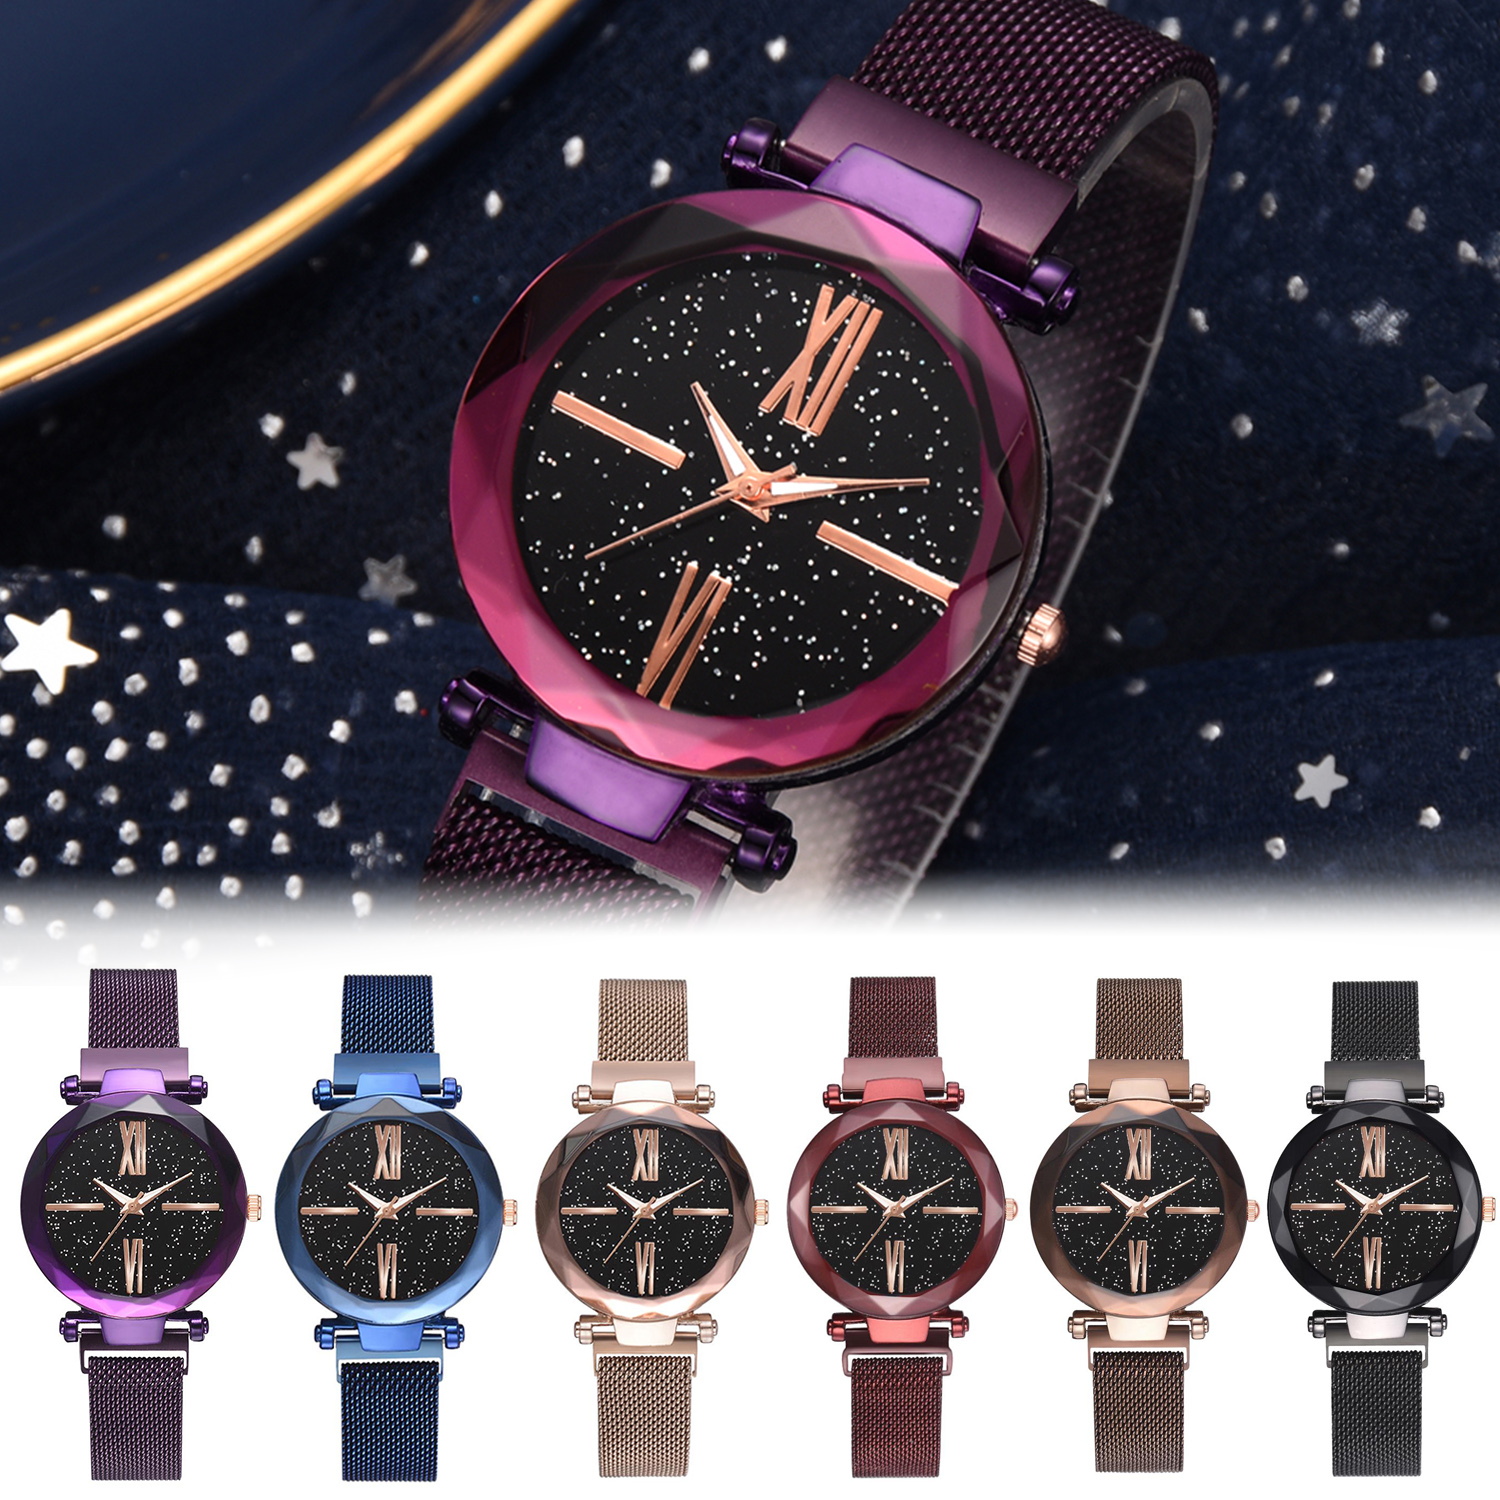 Starry-Sky-Masonry-Women-Roman-Watch-Magnet-Strap-Buckle-Stainless-Steel-Watches